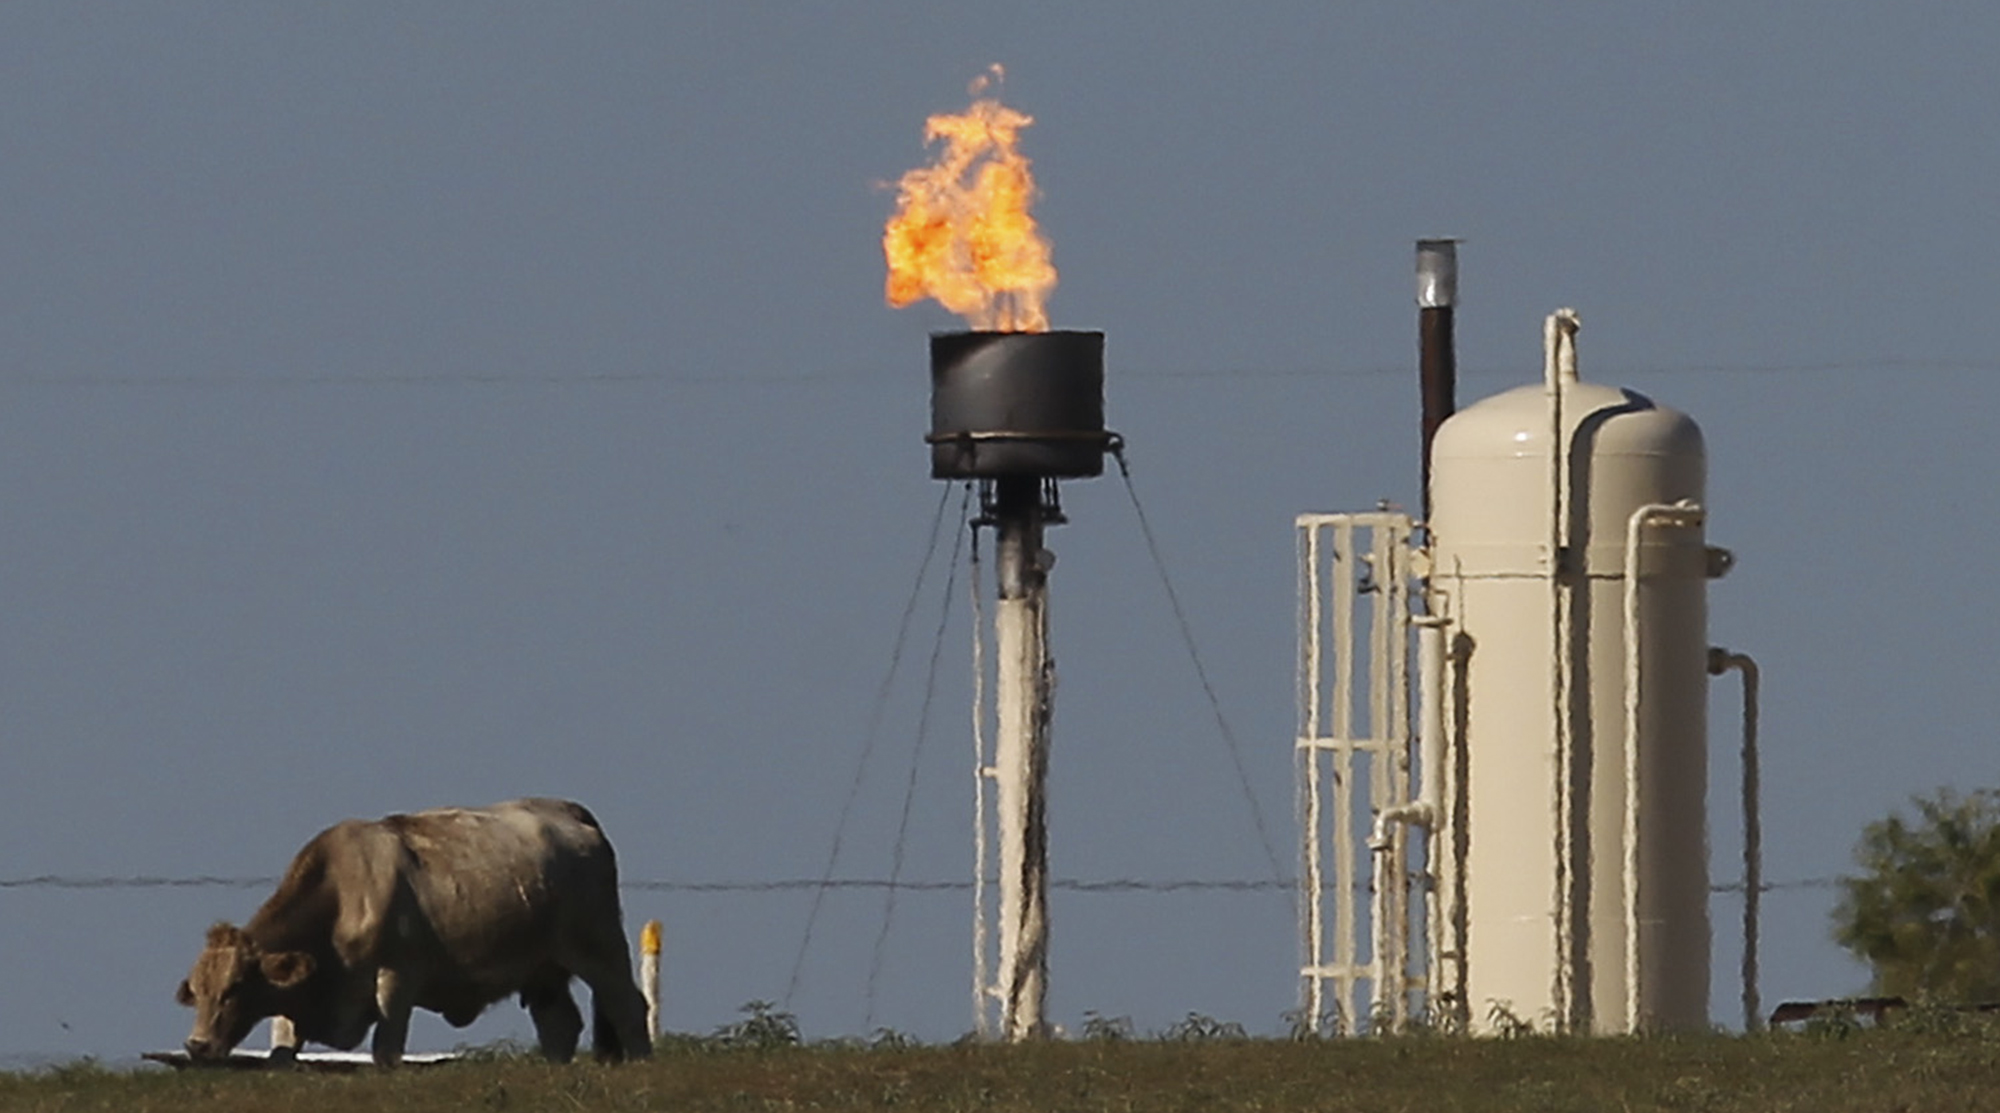 Thirsty for oil energy companies wasting less valuable